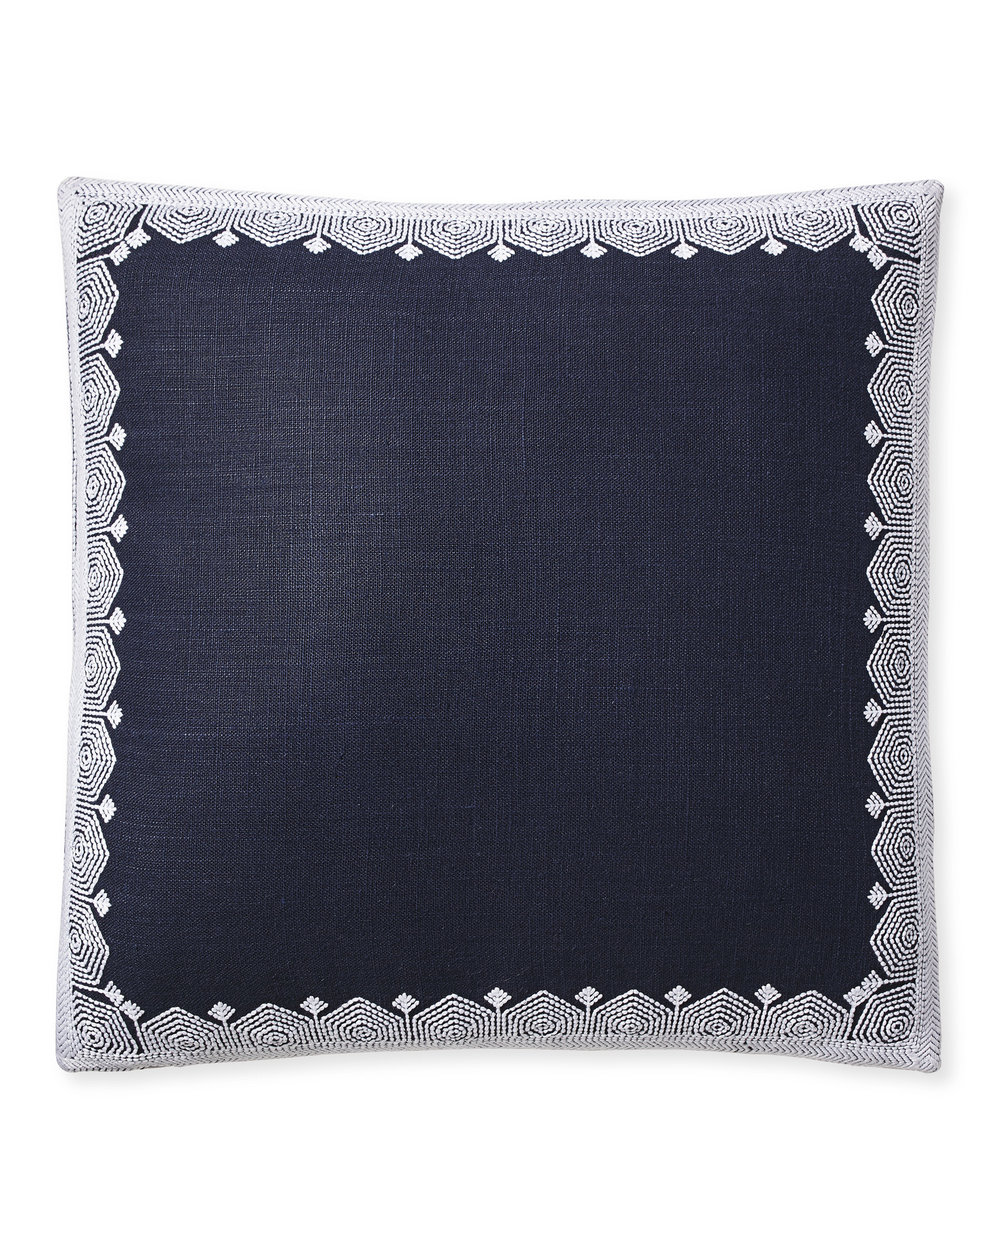 Dec_Pillow_Olympia_24x24_Navy_White_Front_MV_Crop_SH.jpg